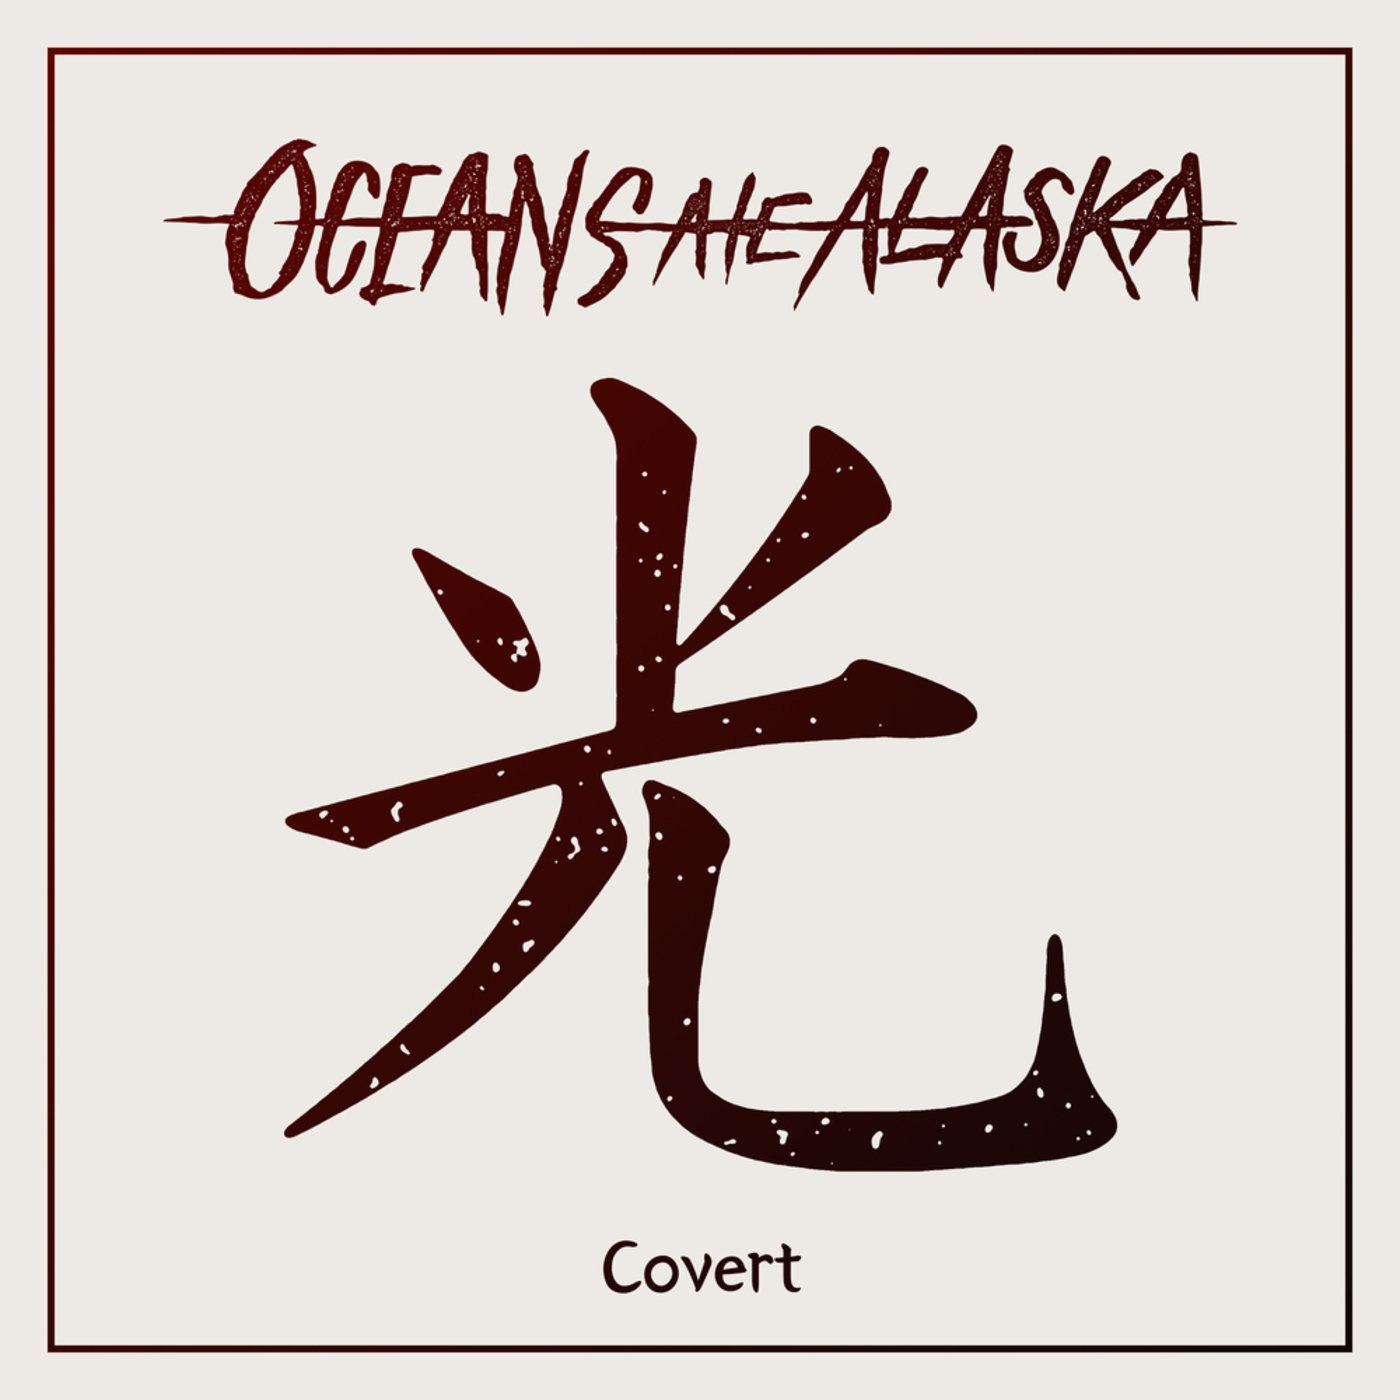 Oceans Ate Alaska - Covert [single] (2017)